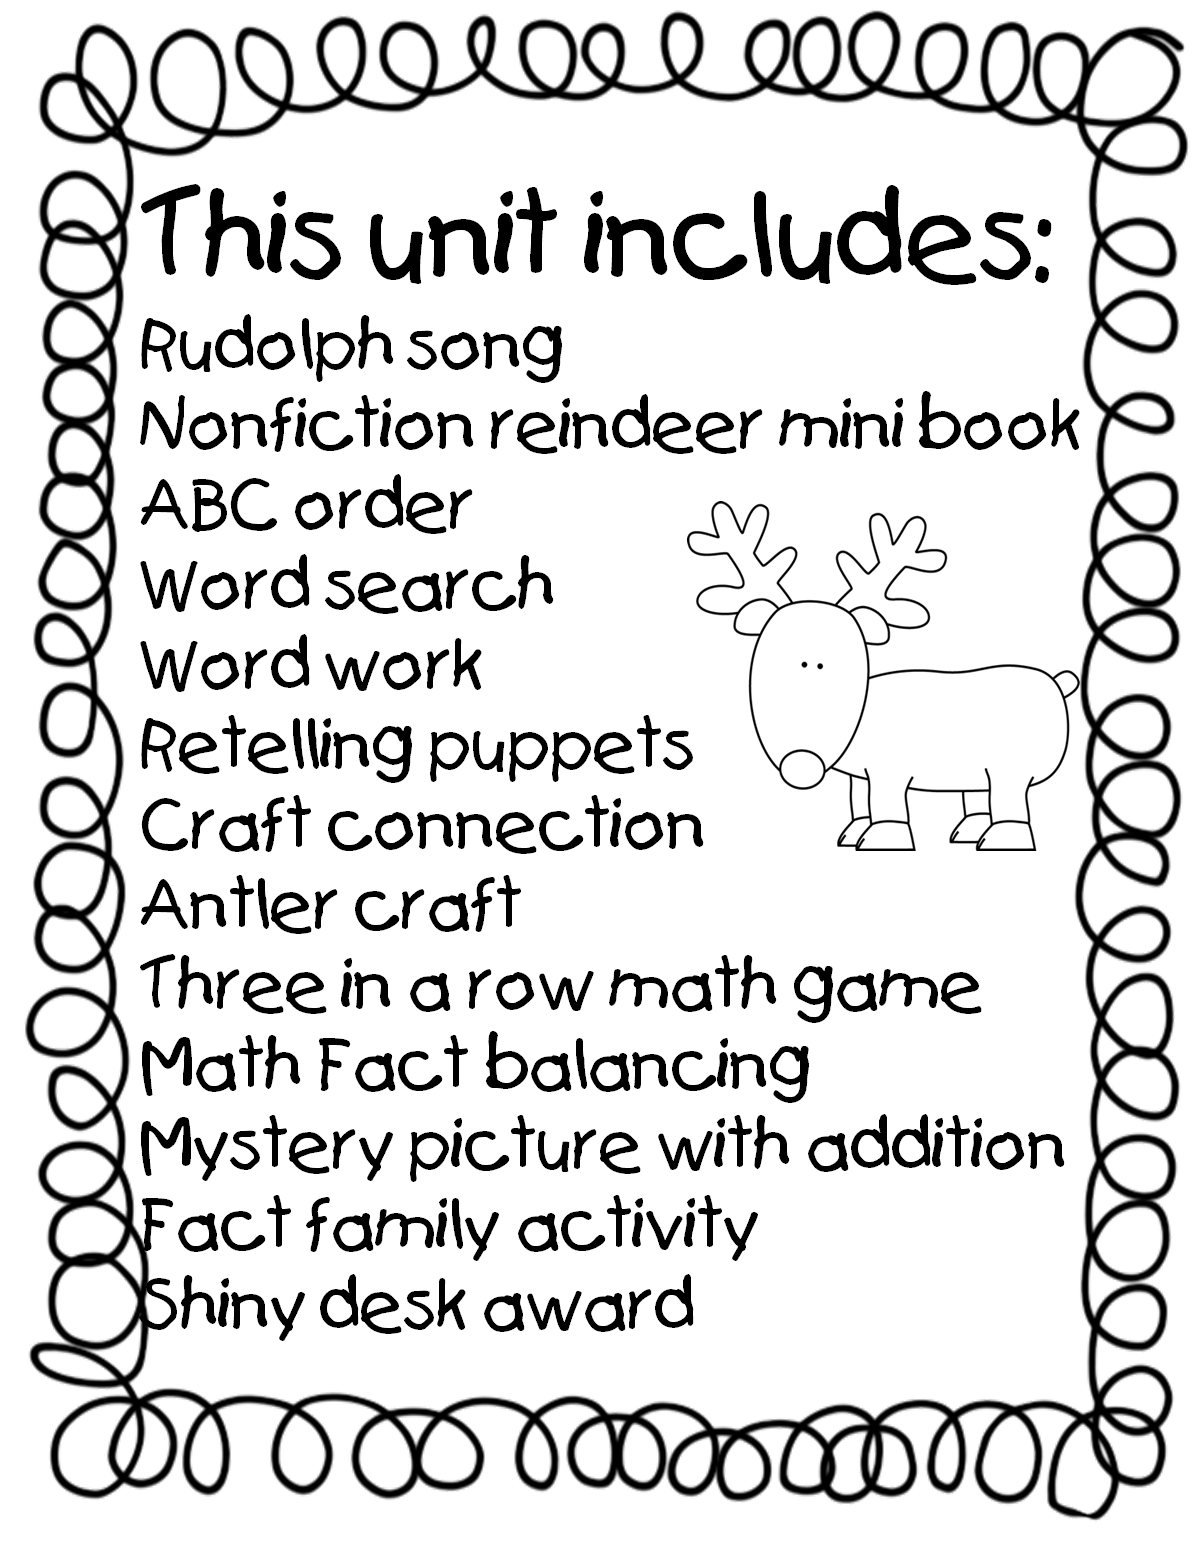 First Grade Wow: Reindeer Games | Classroom - Winter and Christmas ...